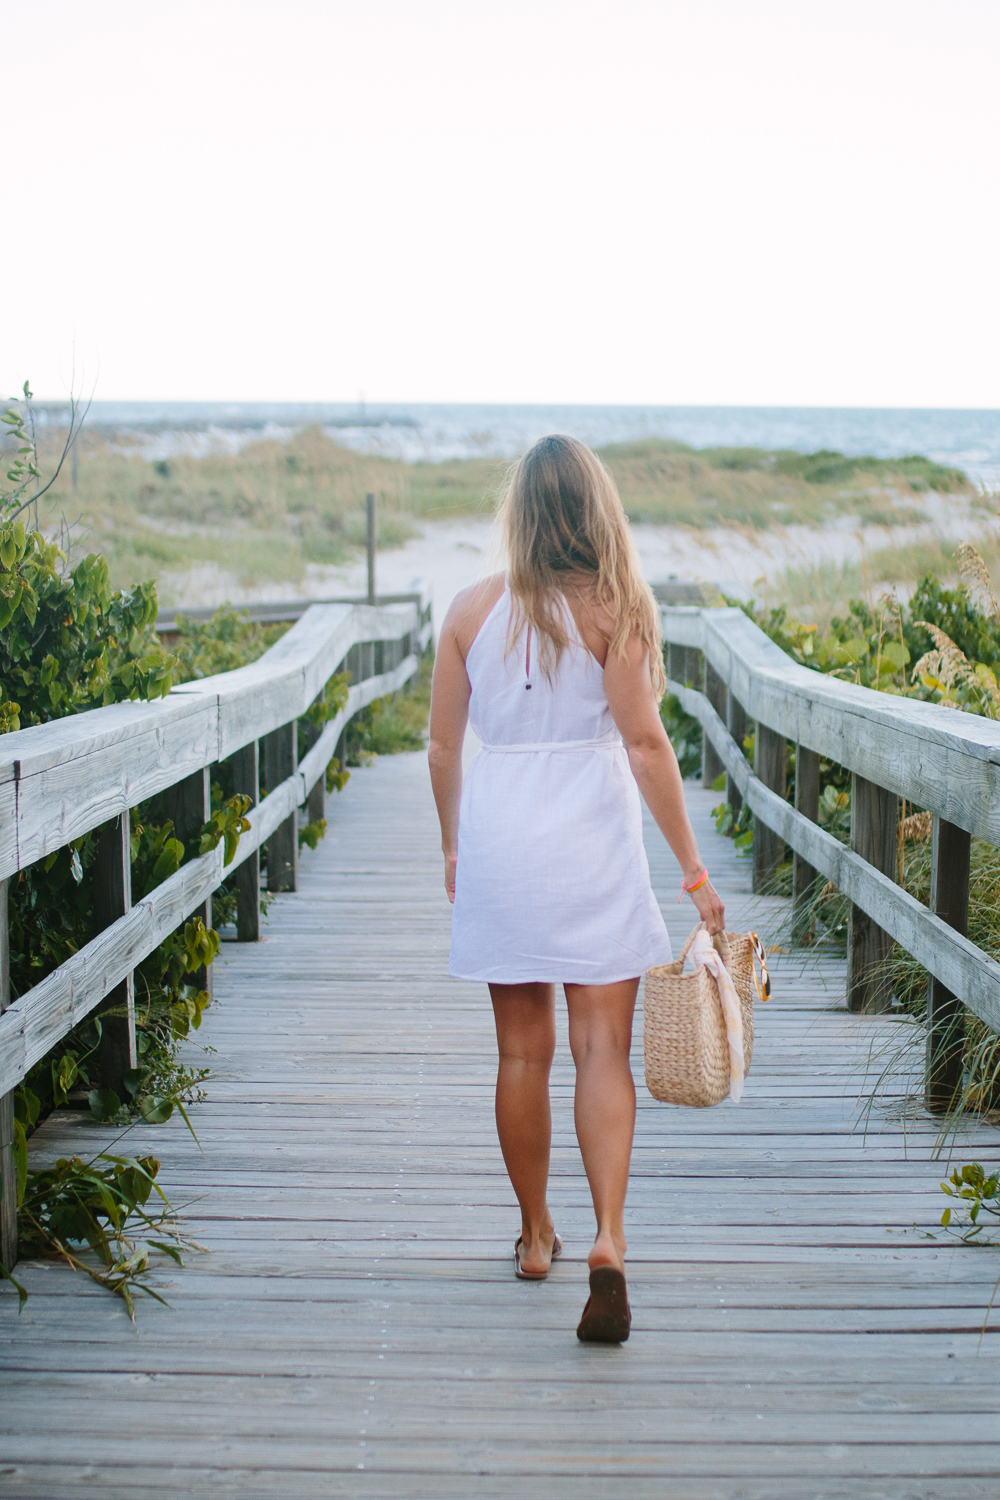 White Sundresses for Summer Vacations | Sunshine Style